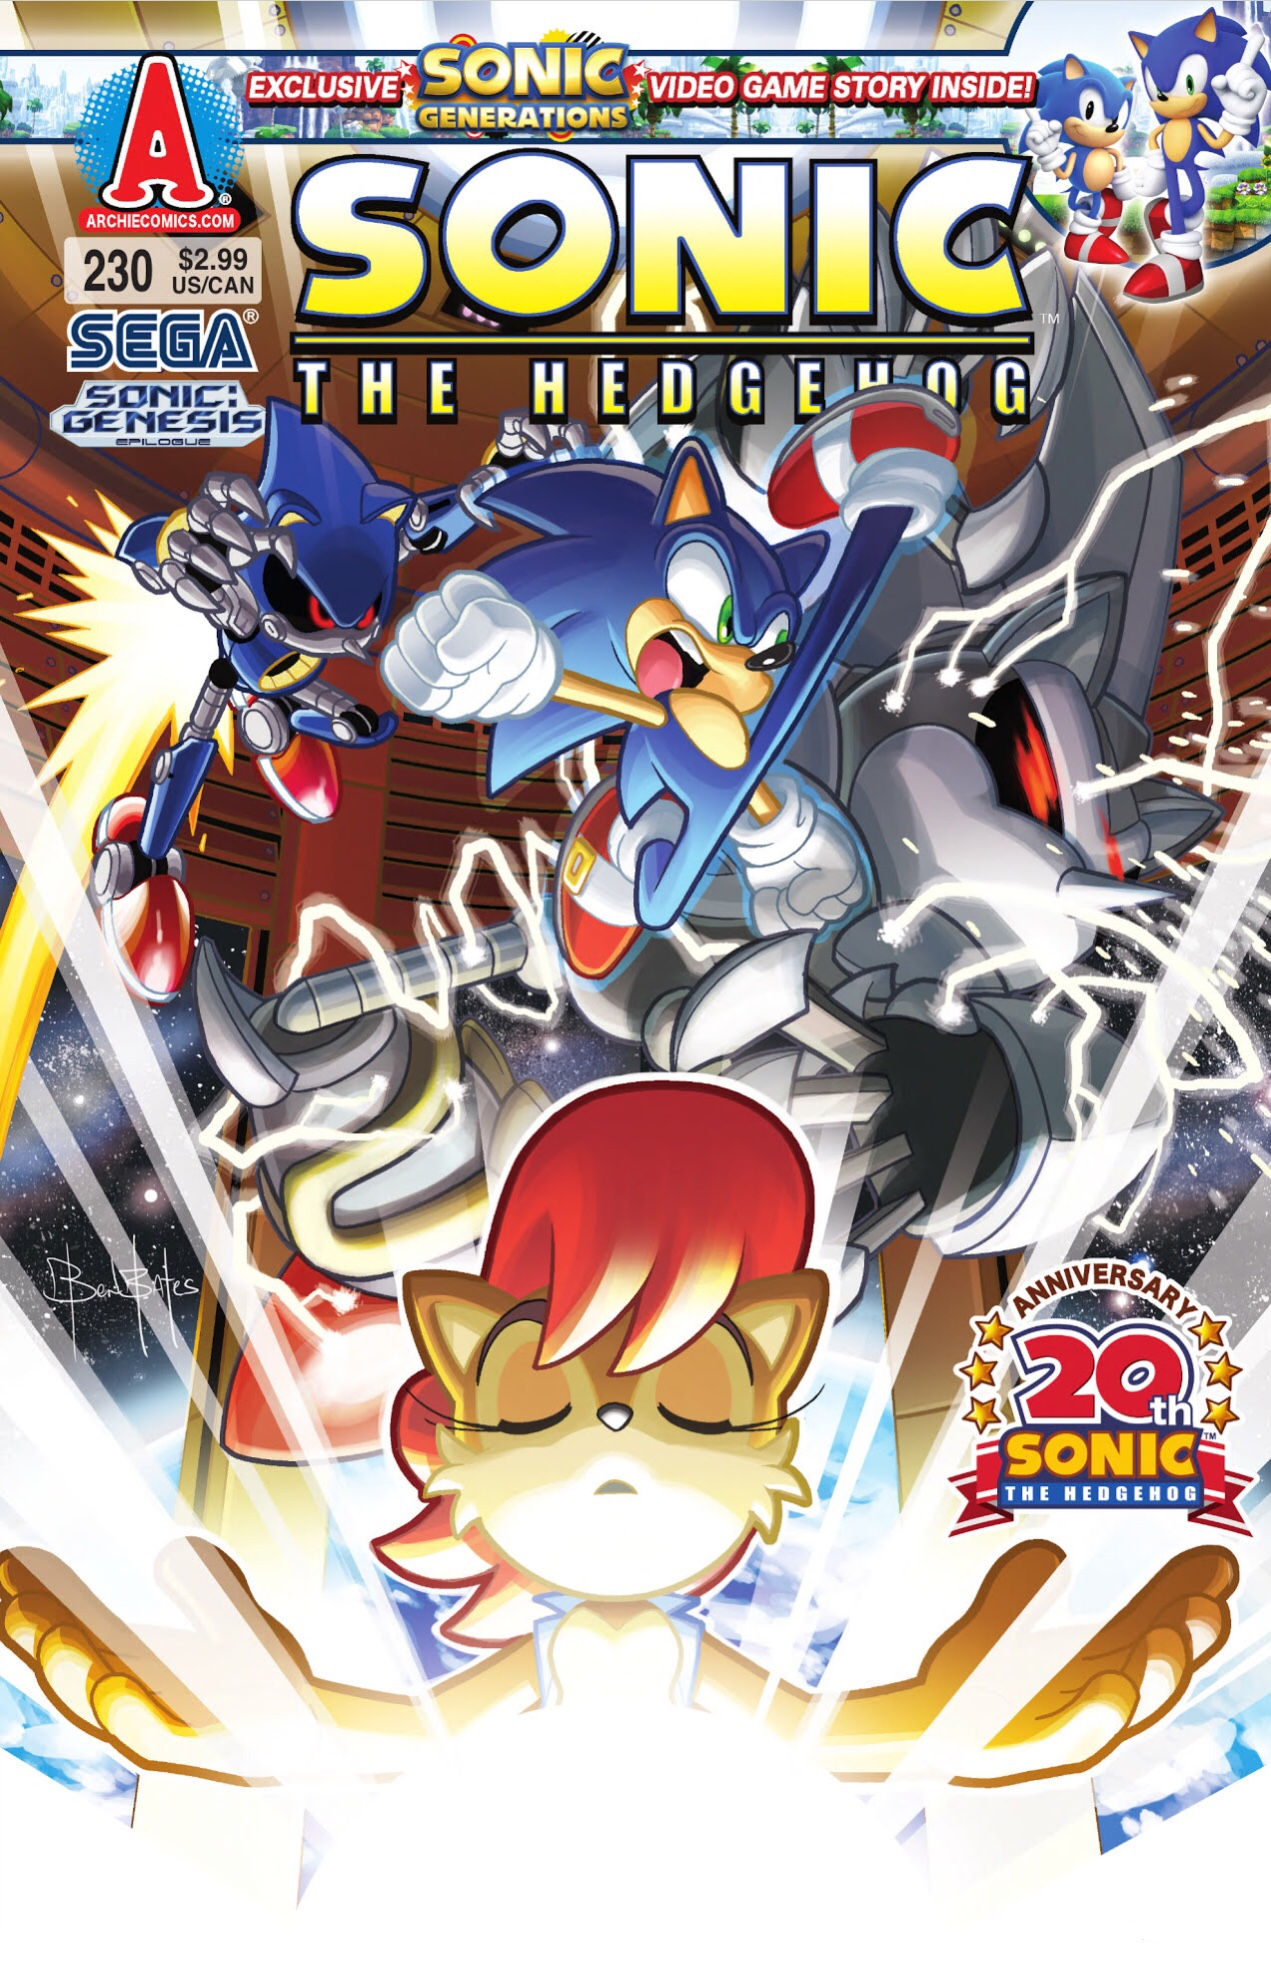 Archie Sonic The Hedgehog Issue 230 Sonic News Network Fandom